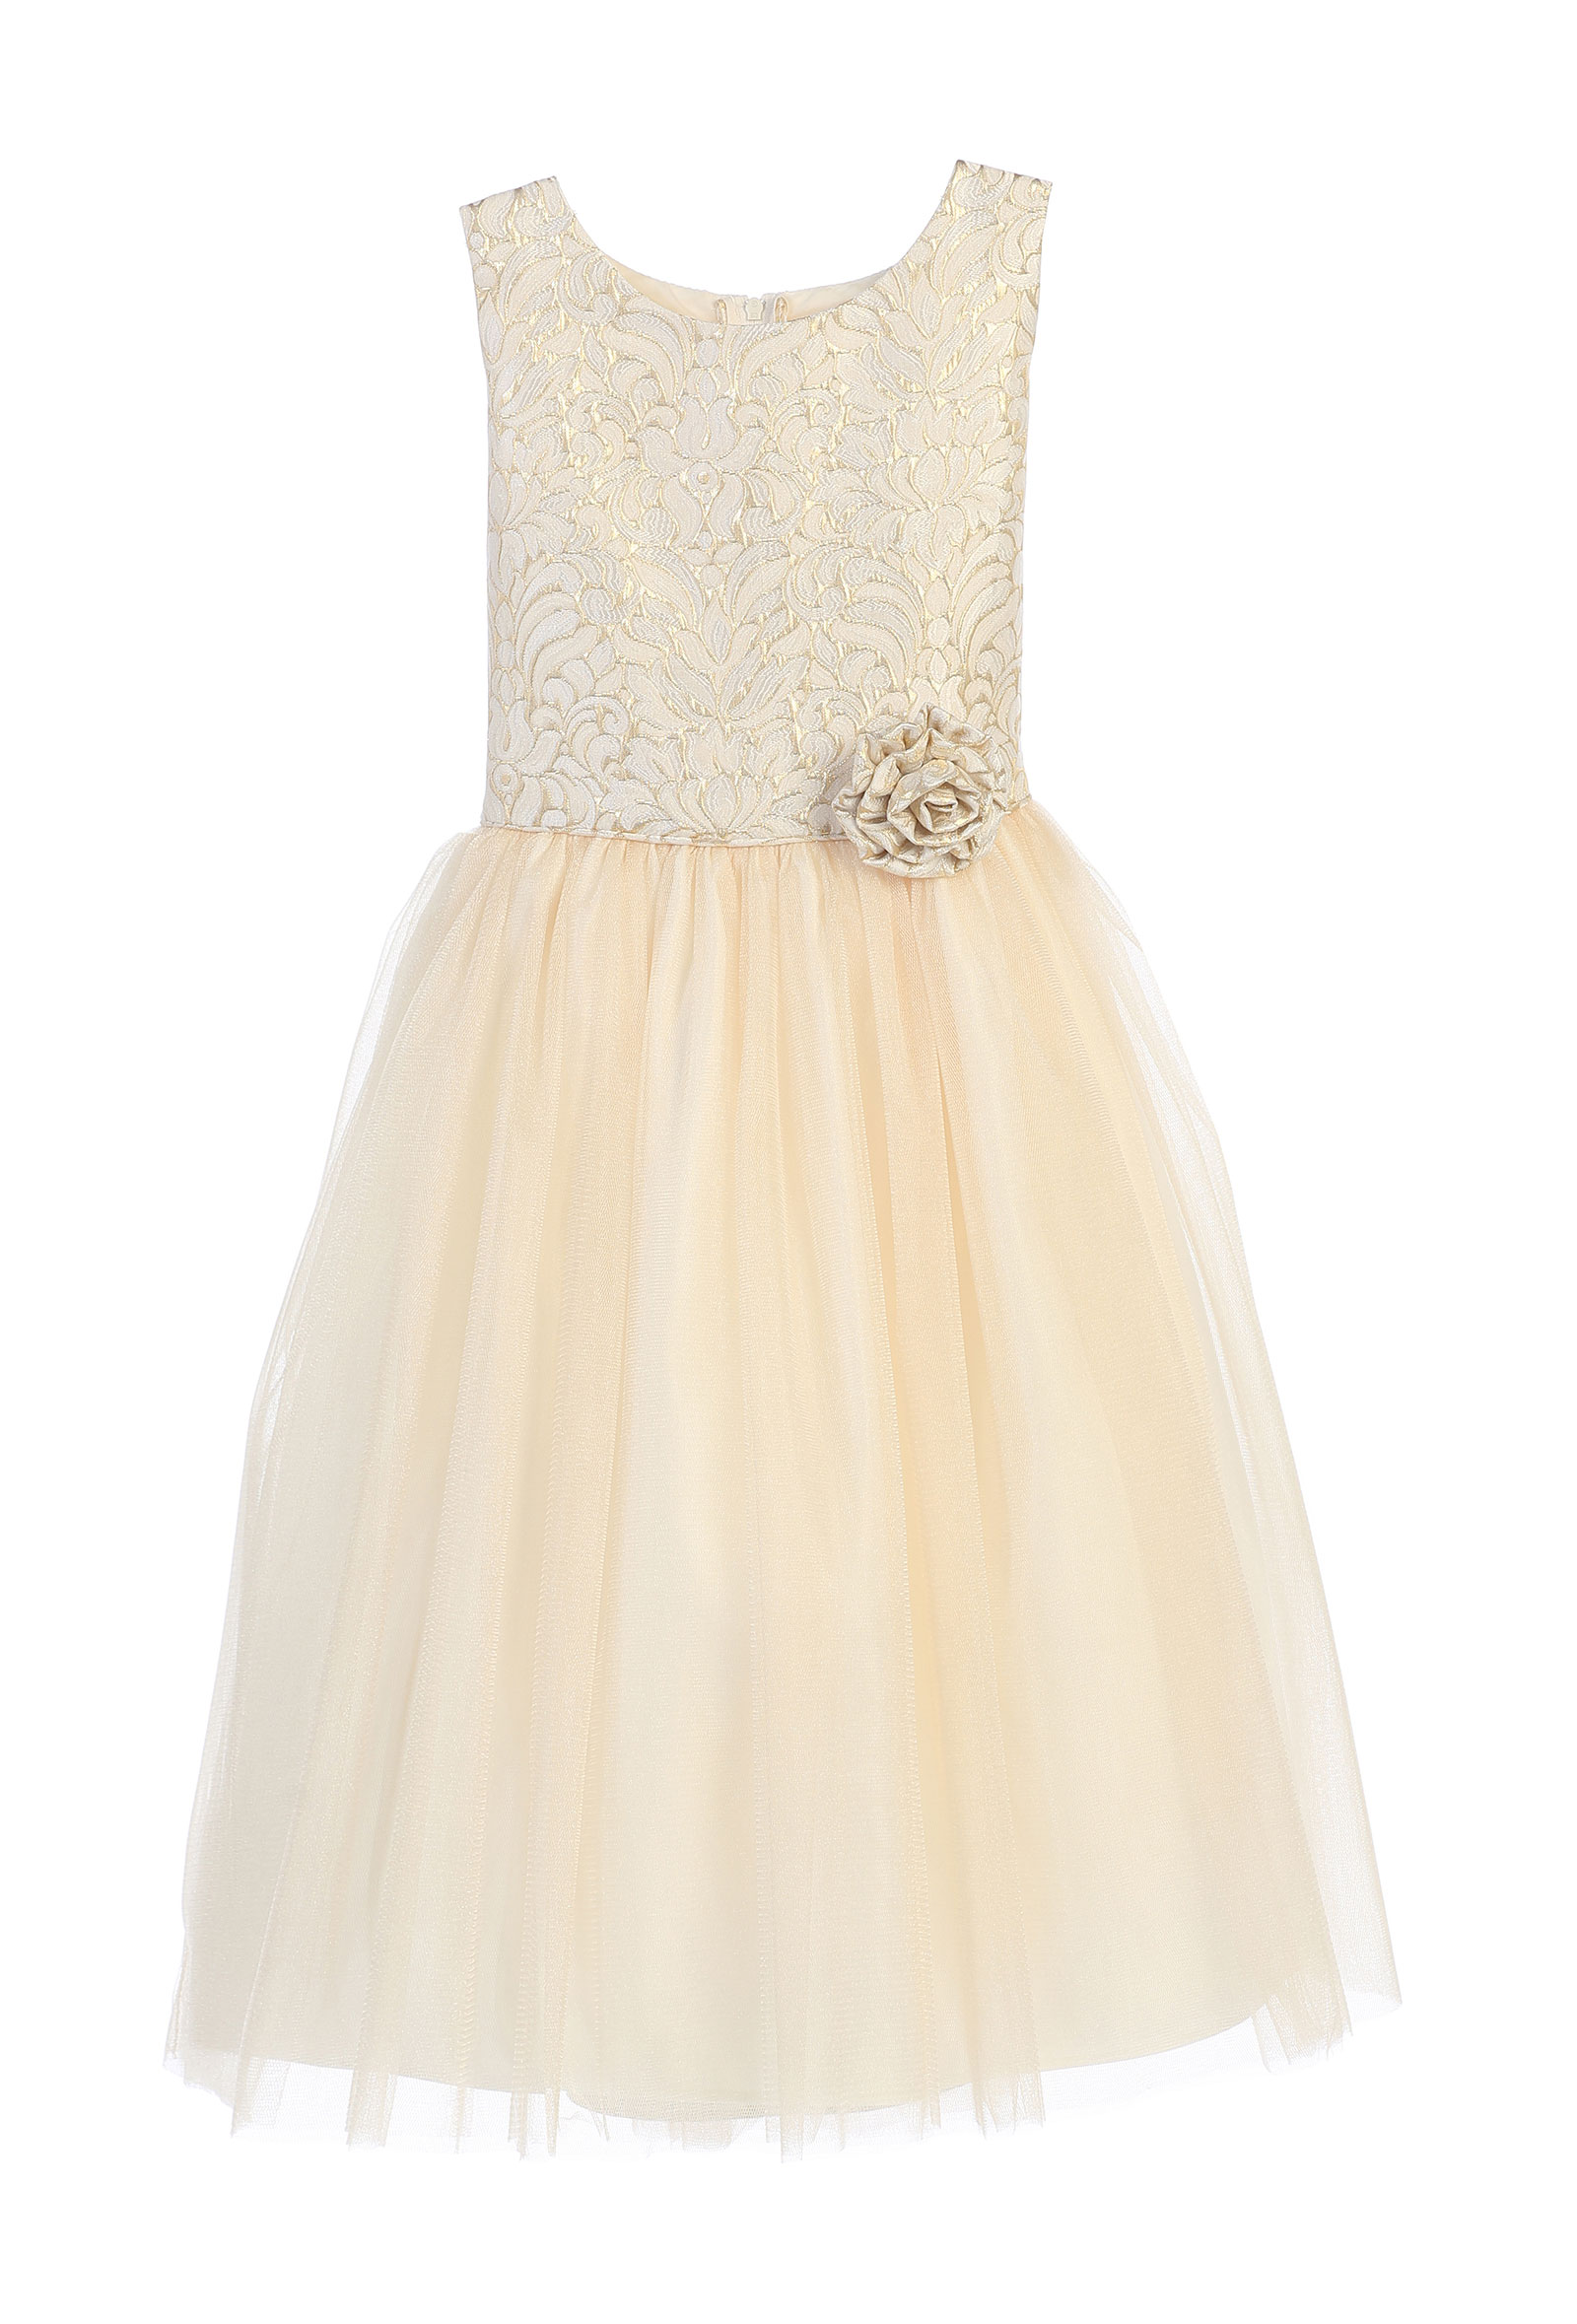 SK 671IV Girls Dress Style 671 Multitone Jacquard and Tulle Dress in Choi